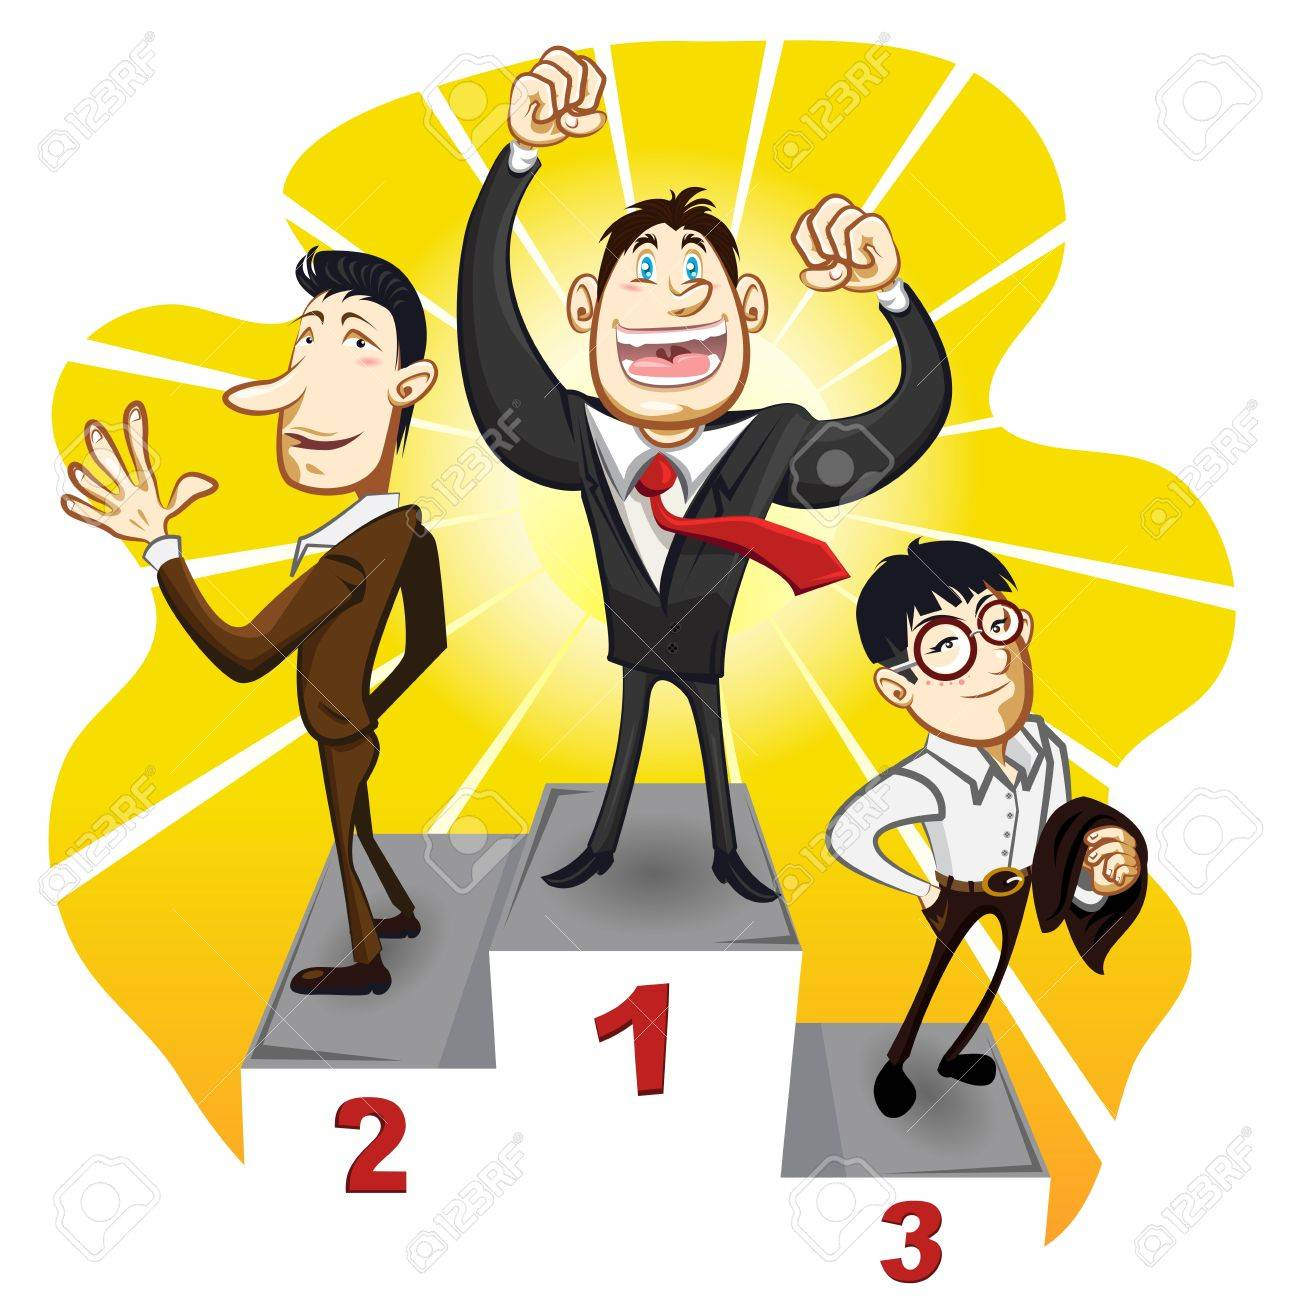 A Business Podium With The Winner Businessman Champion Stand In The First, Second And Third Place - 19111657